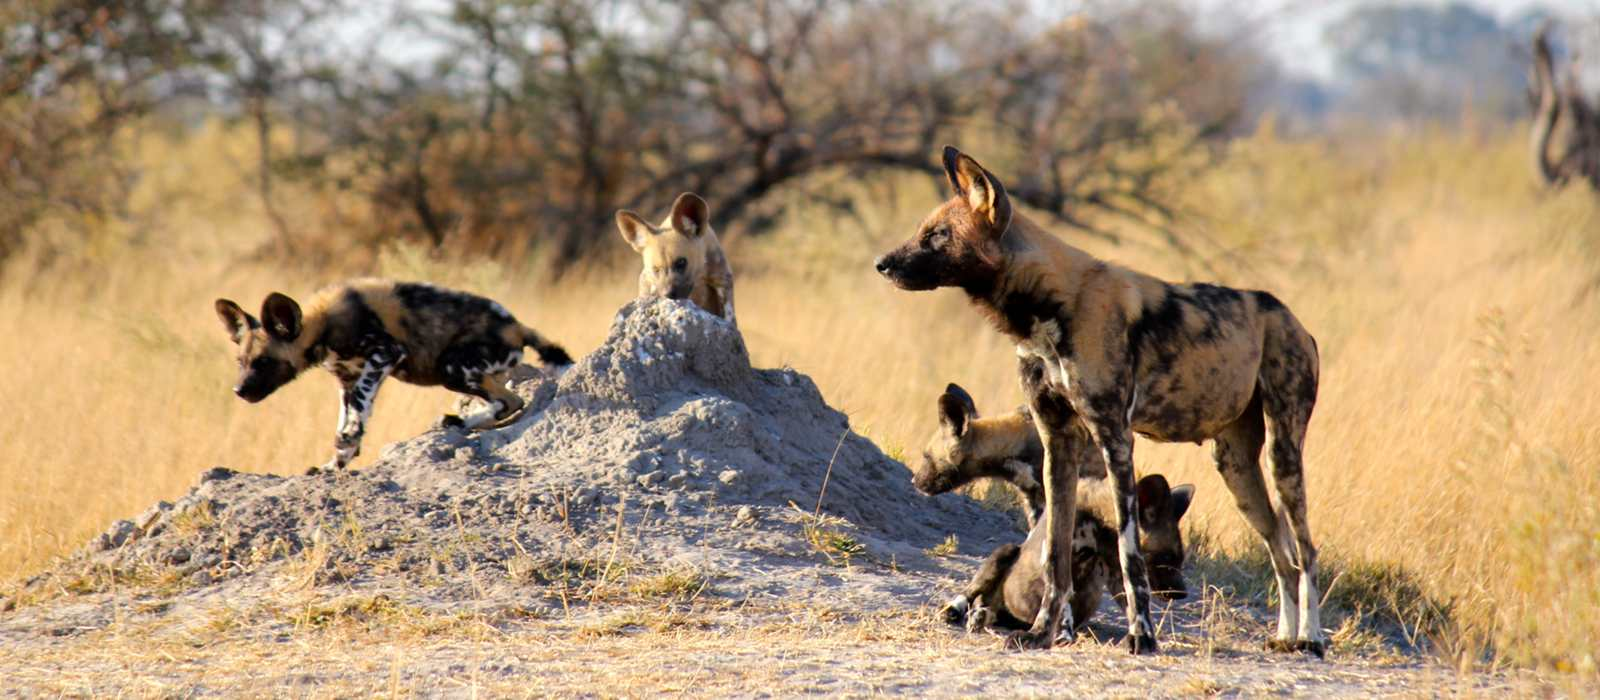 Wild dogs at termite mound